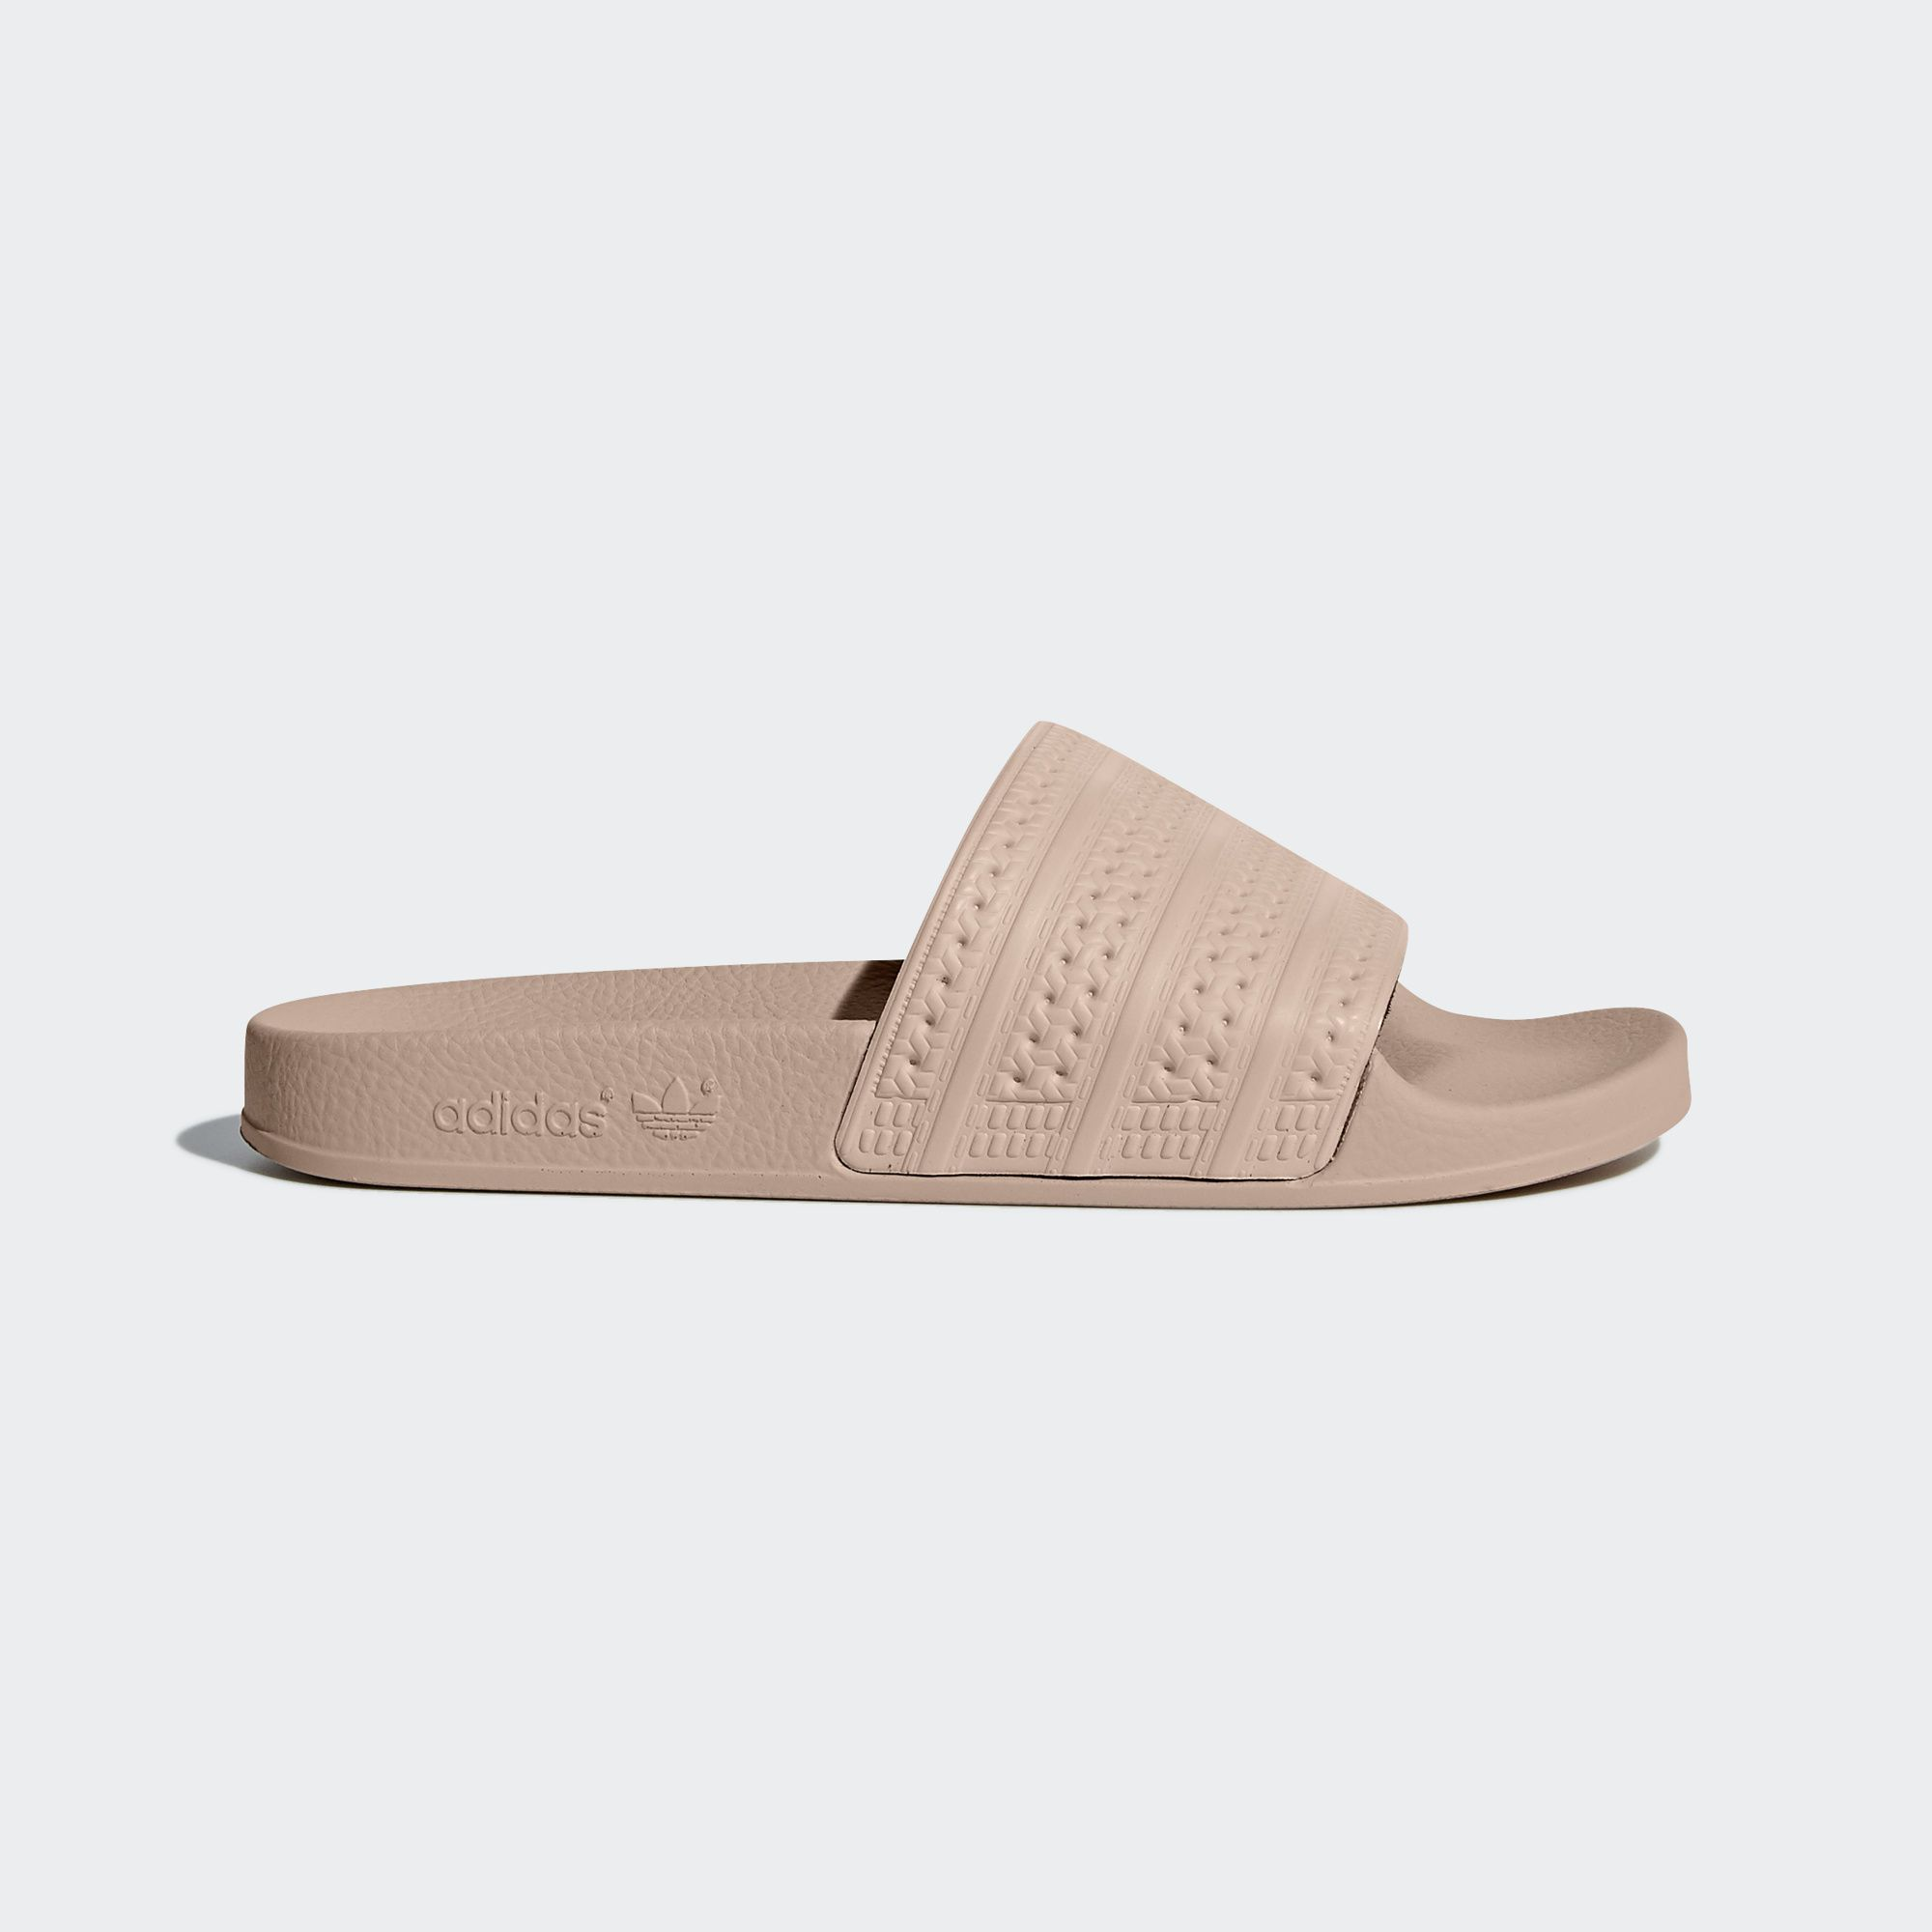 591a2da44e4b1a See all the styles and colours of Women s Adilette Slides - Pink at the  official adidas online shop Canada.